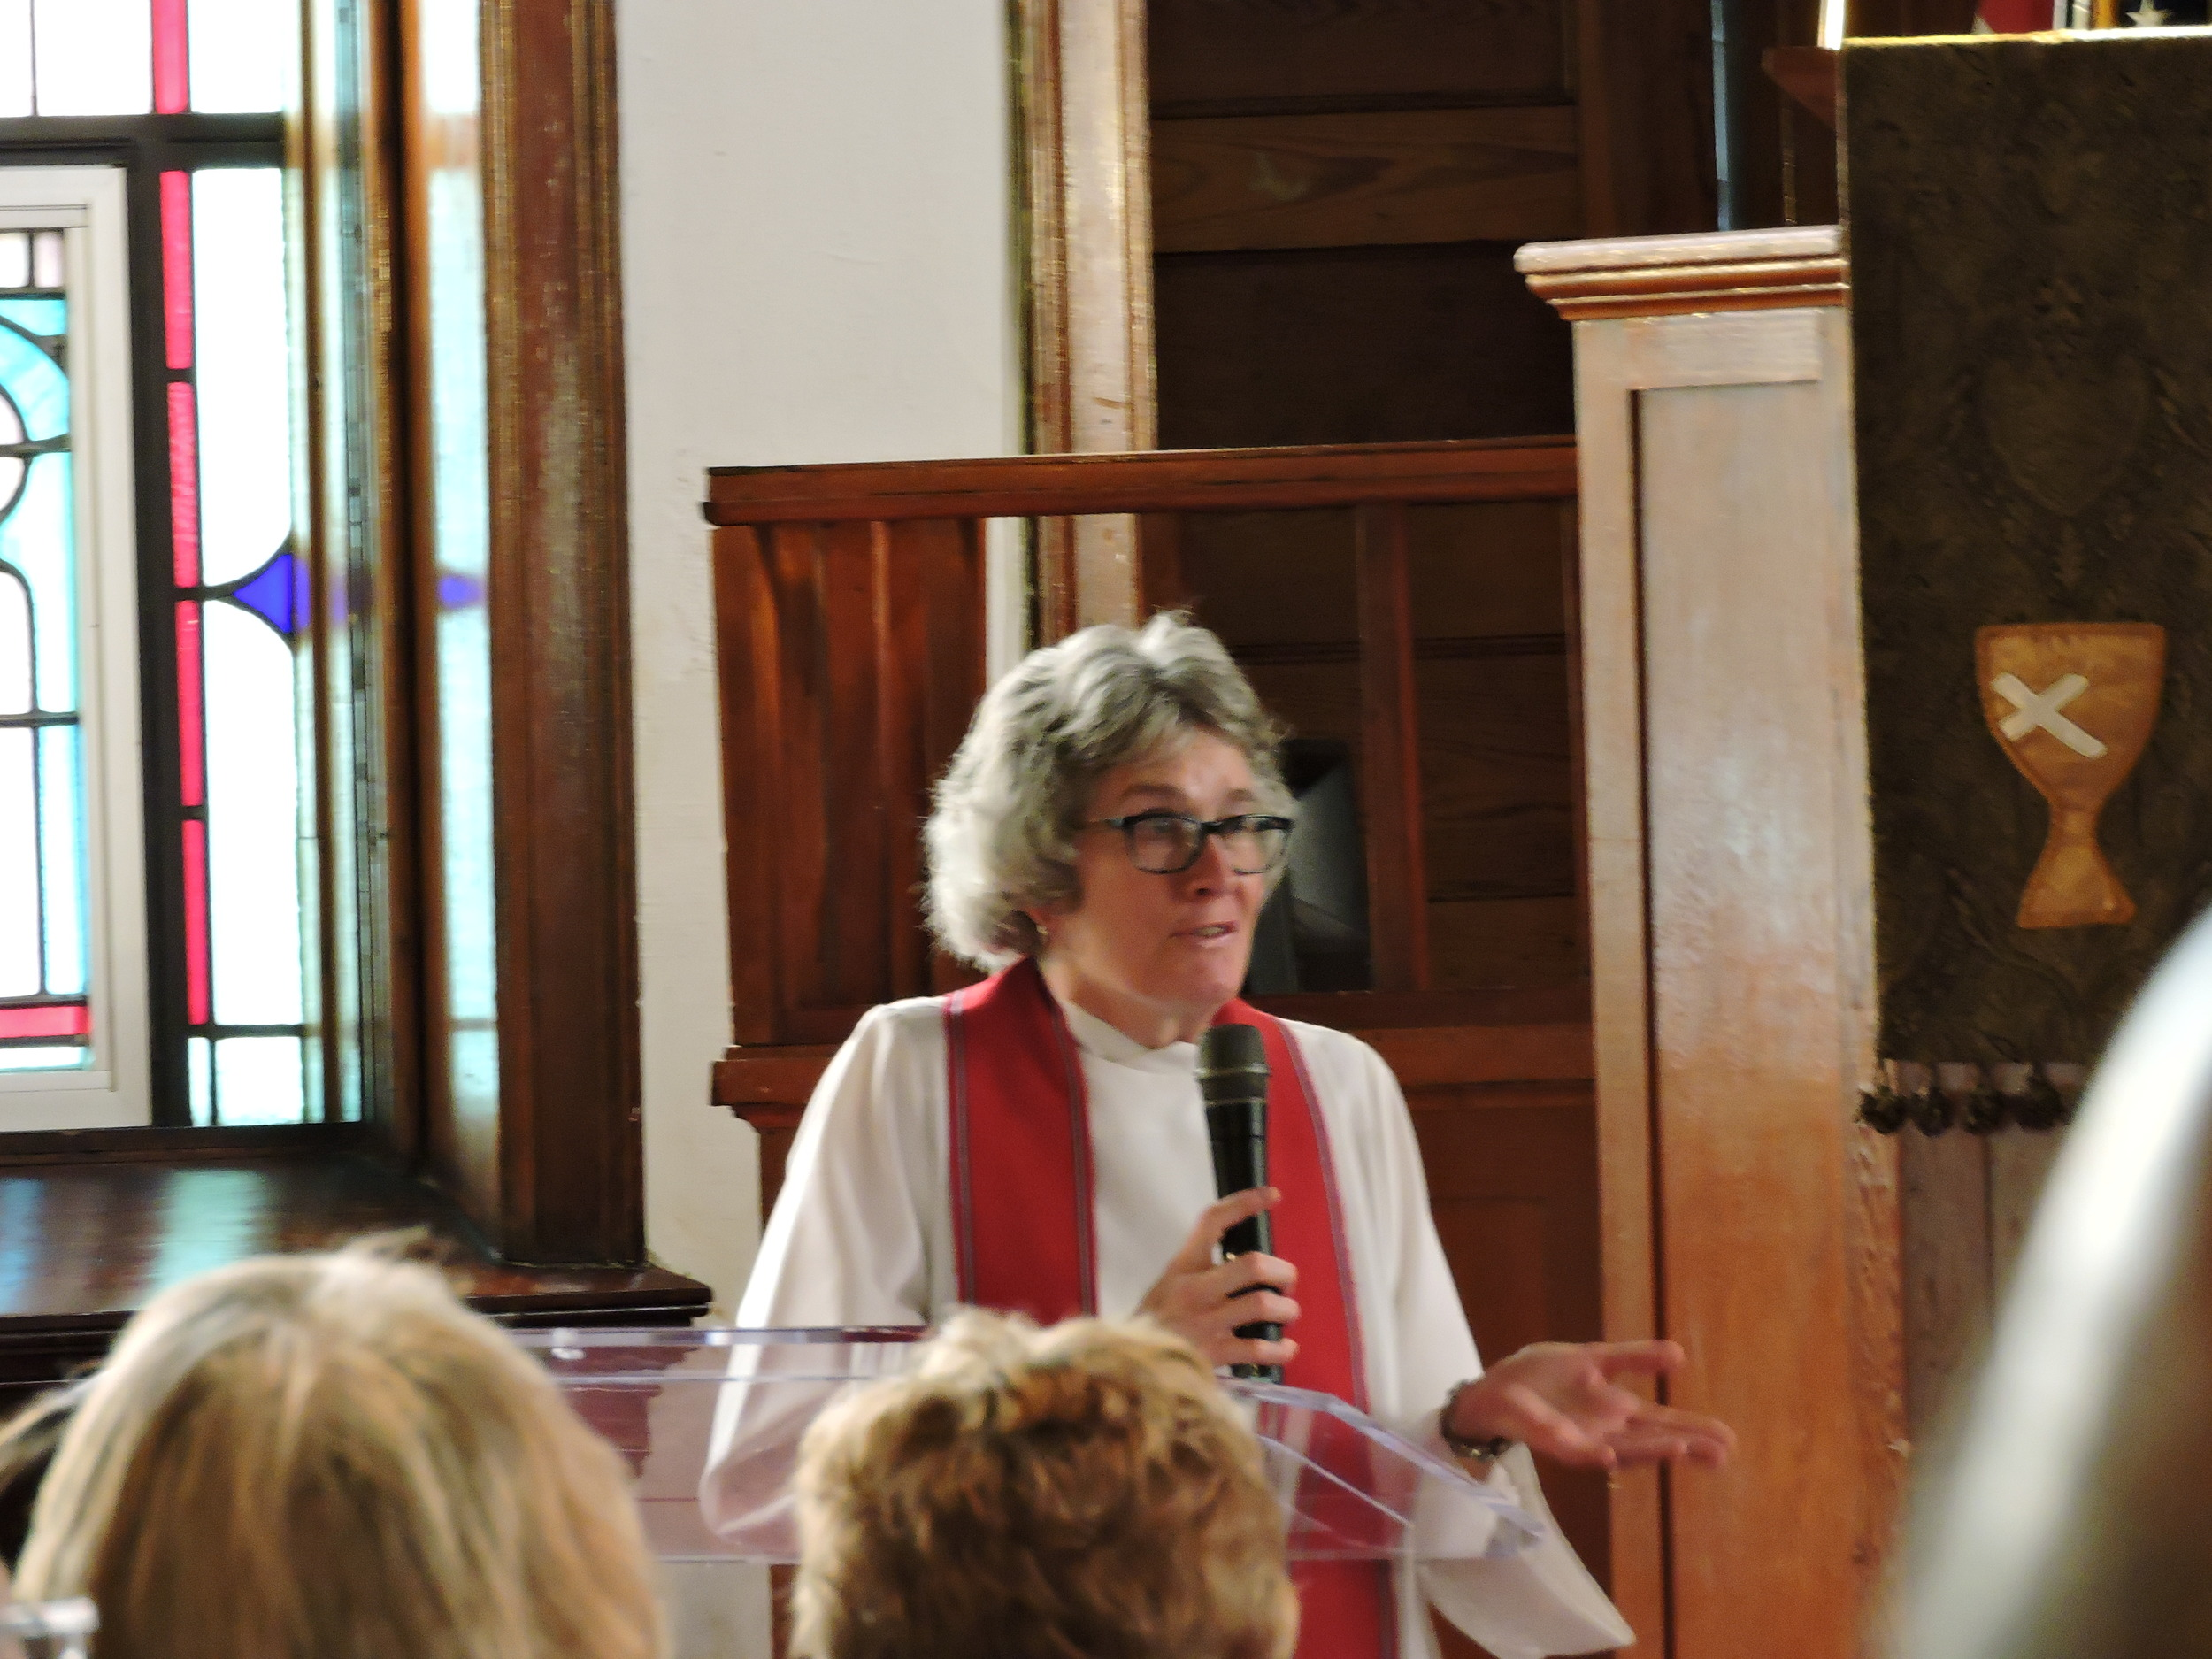 Rev. Margie Pride of Memorial Boulevard Christian Church